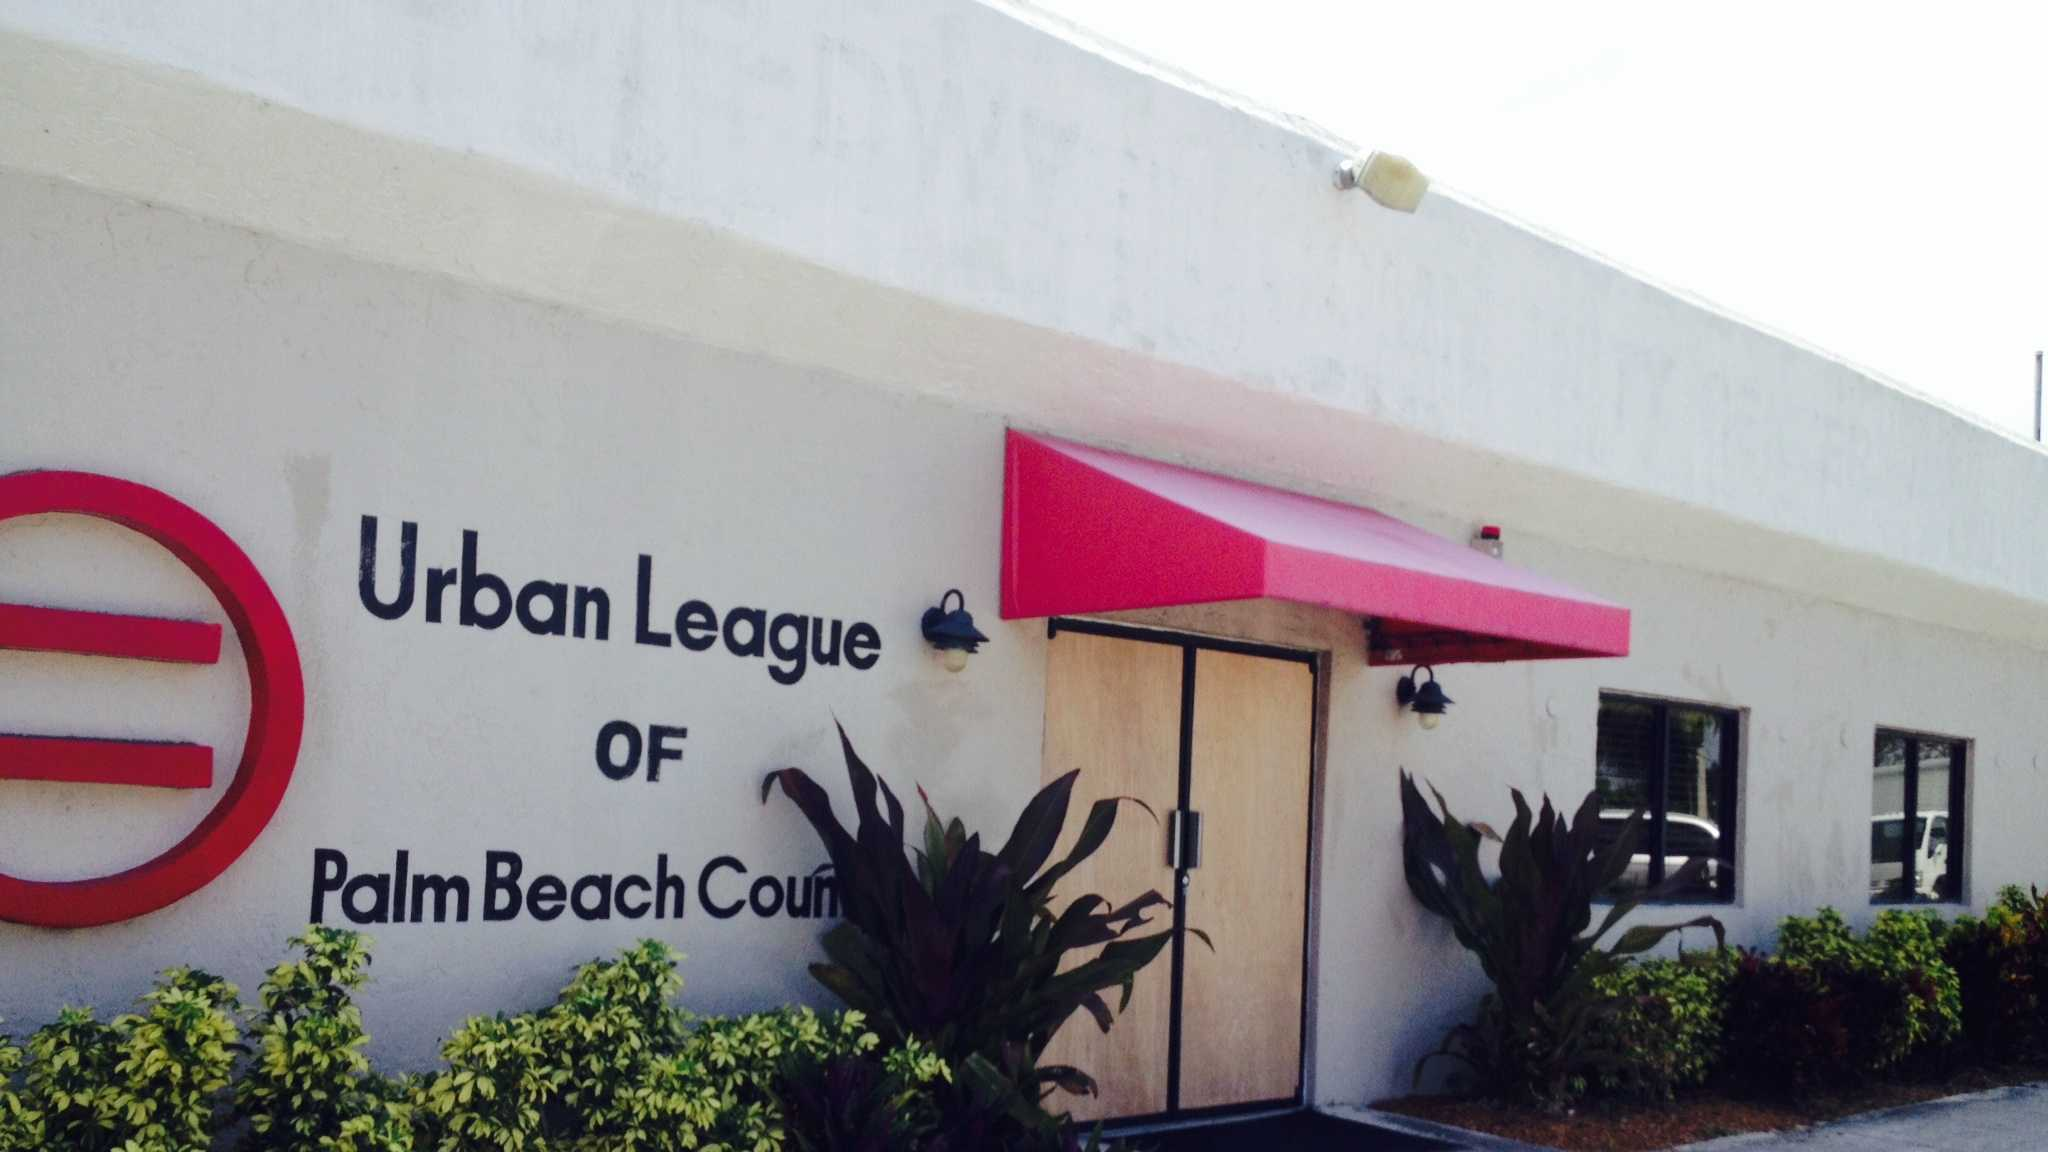 JUNE 16: Thieves broke into the Urban League office in West Palm Beach for the fifth time in two years.